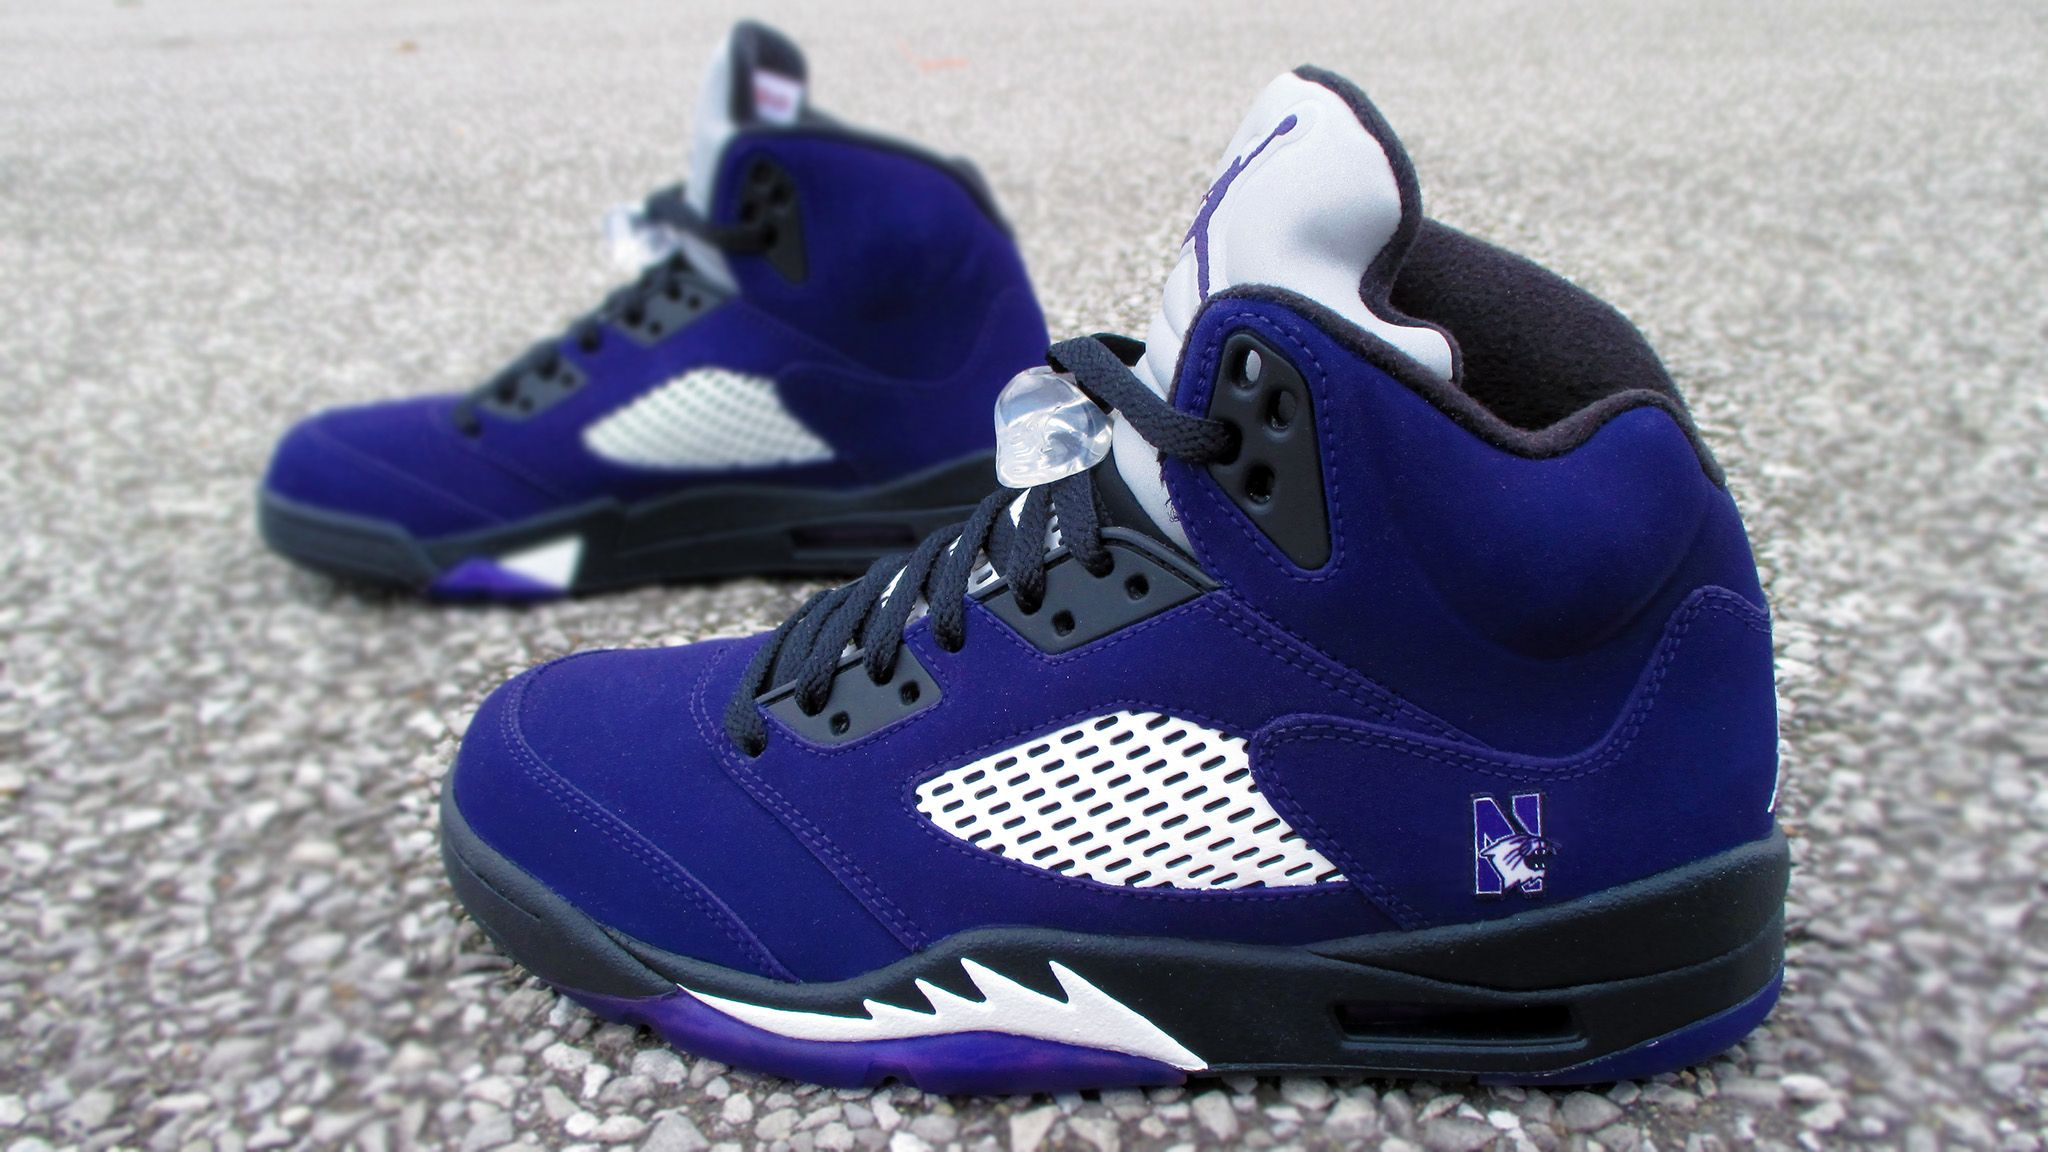 41d405dad34e5f Nike Air Jordan 5 s Custom Black and Purple (Grapes) Northwestern  University Customs